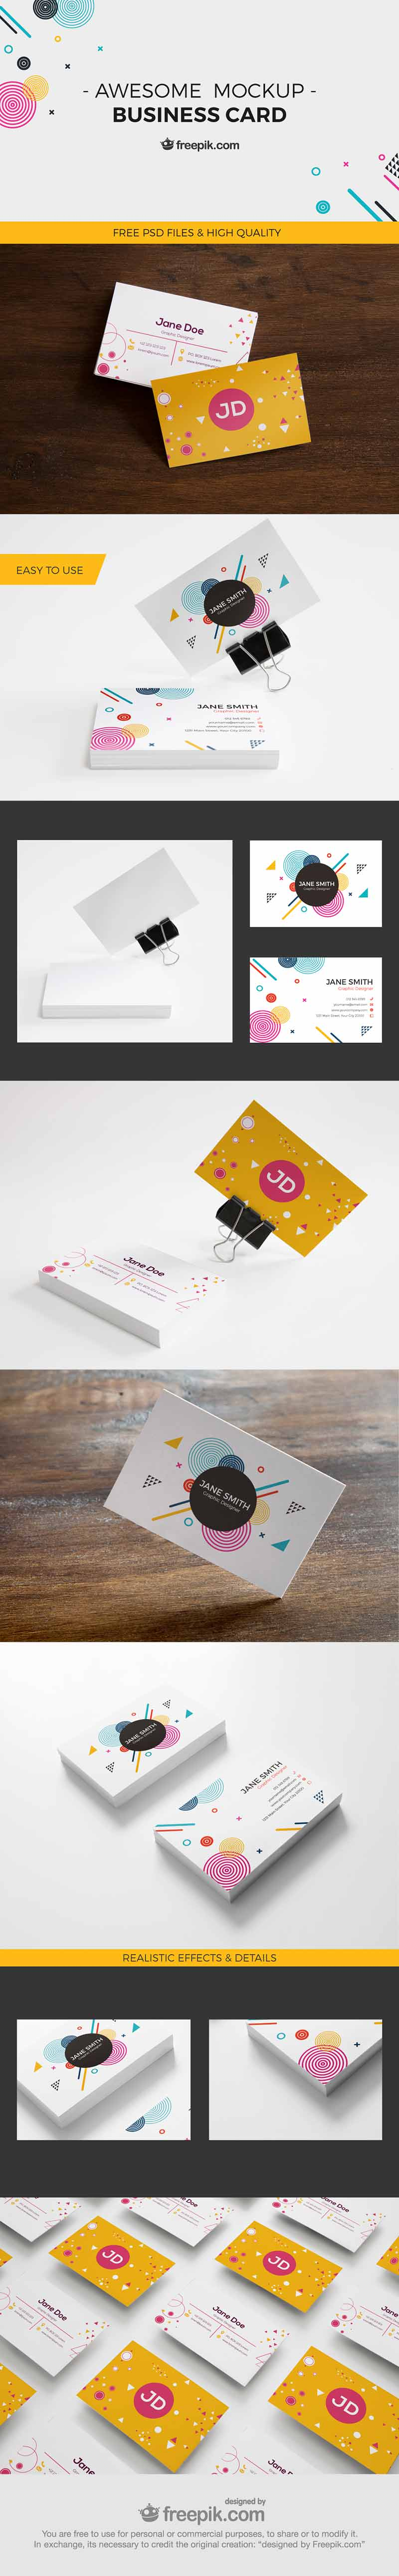 Awesome Business Card Mockup Design - Sample